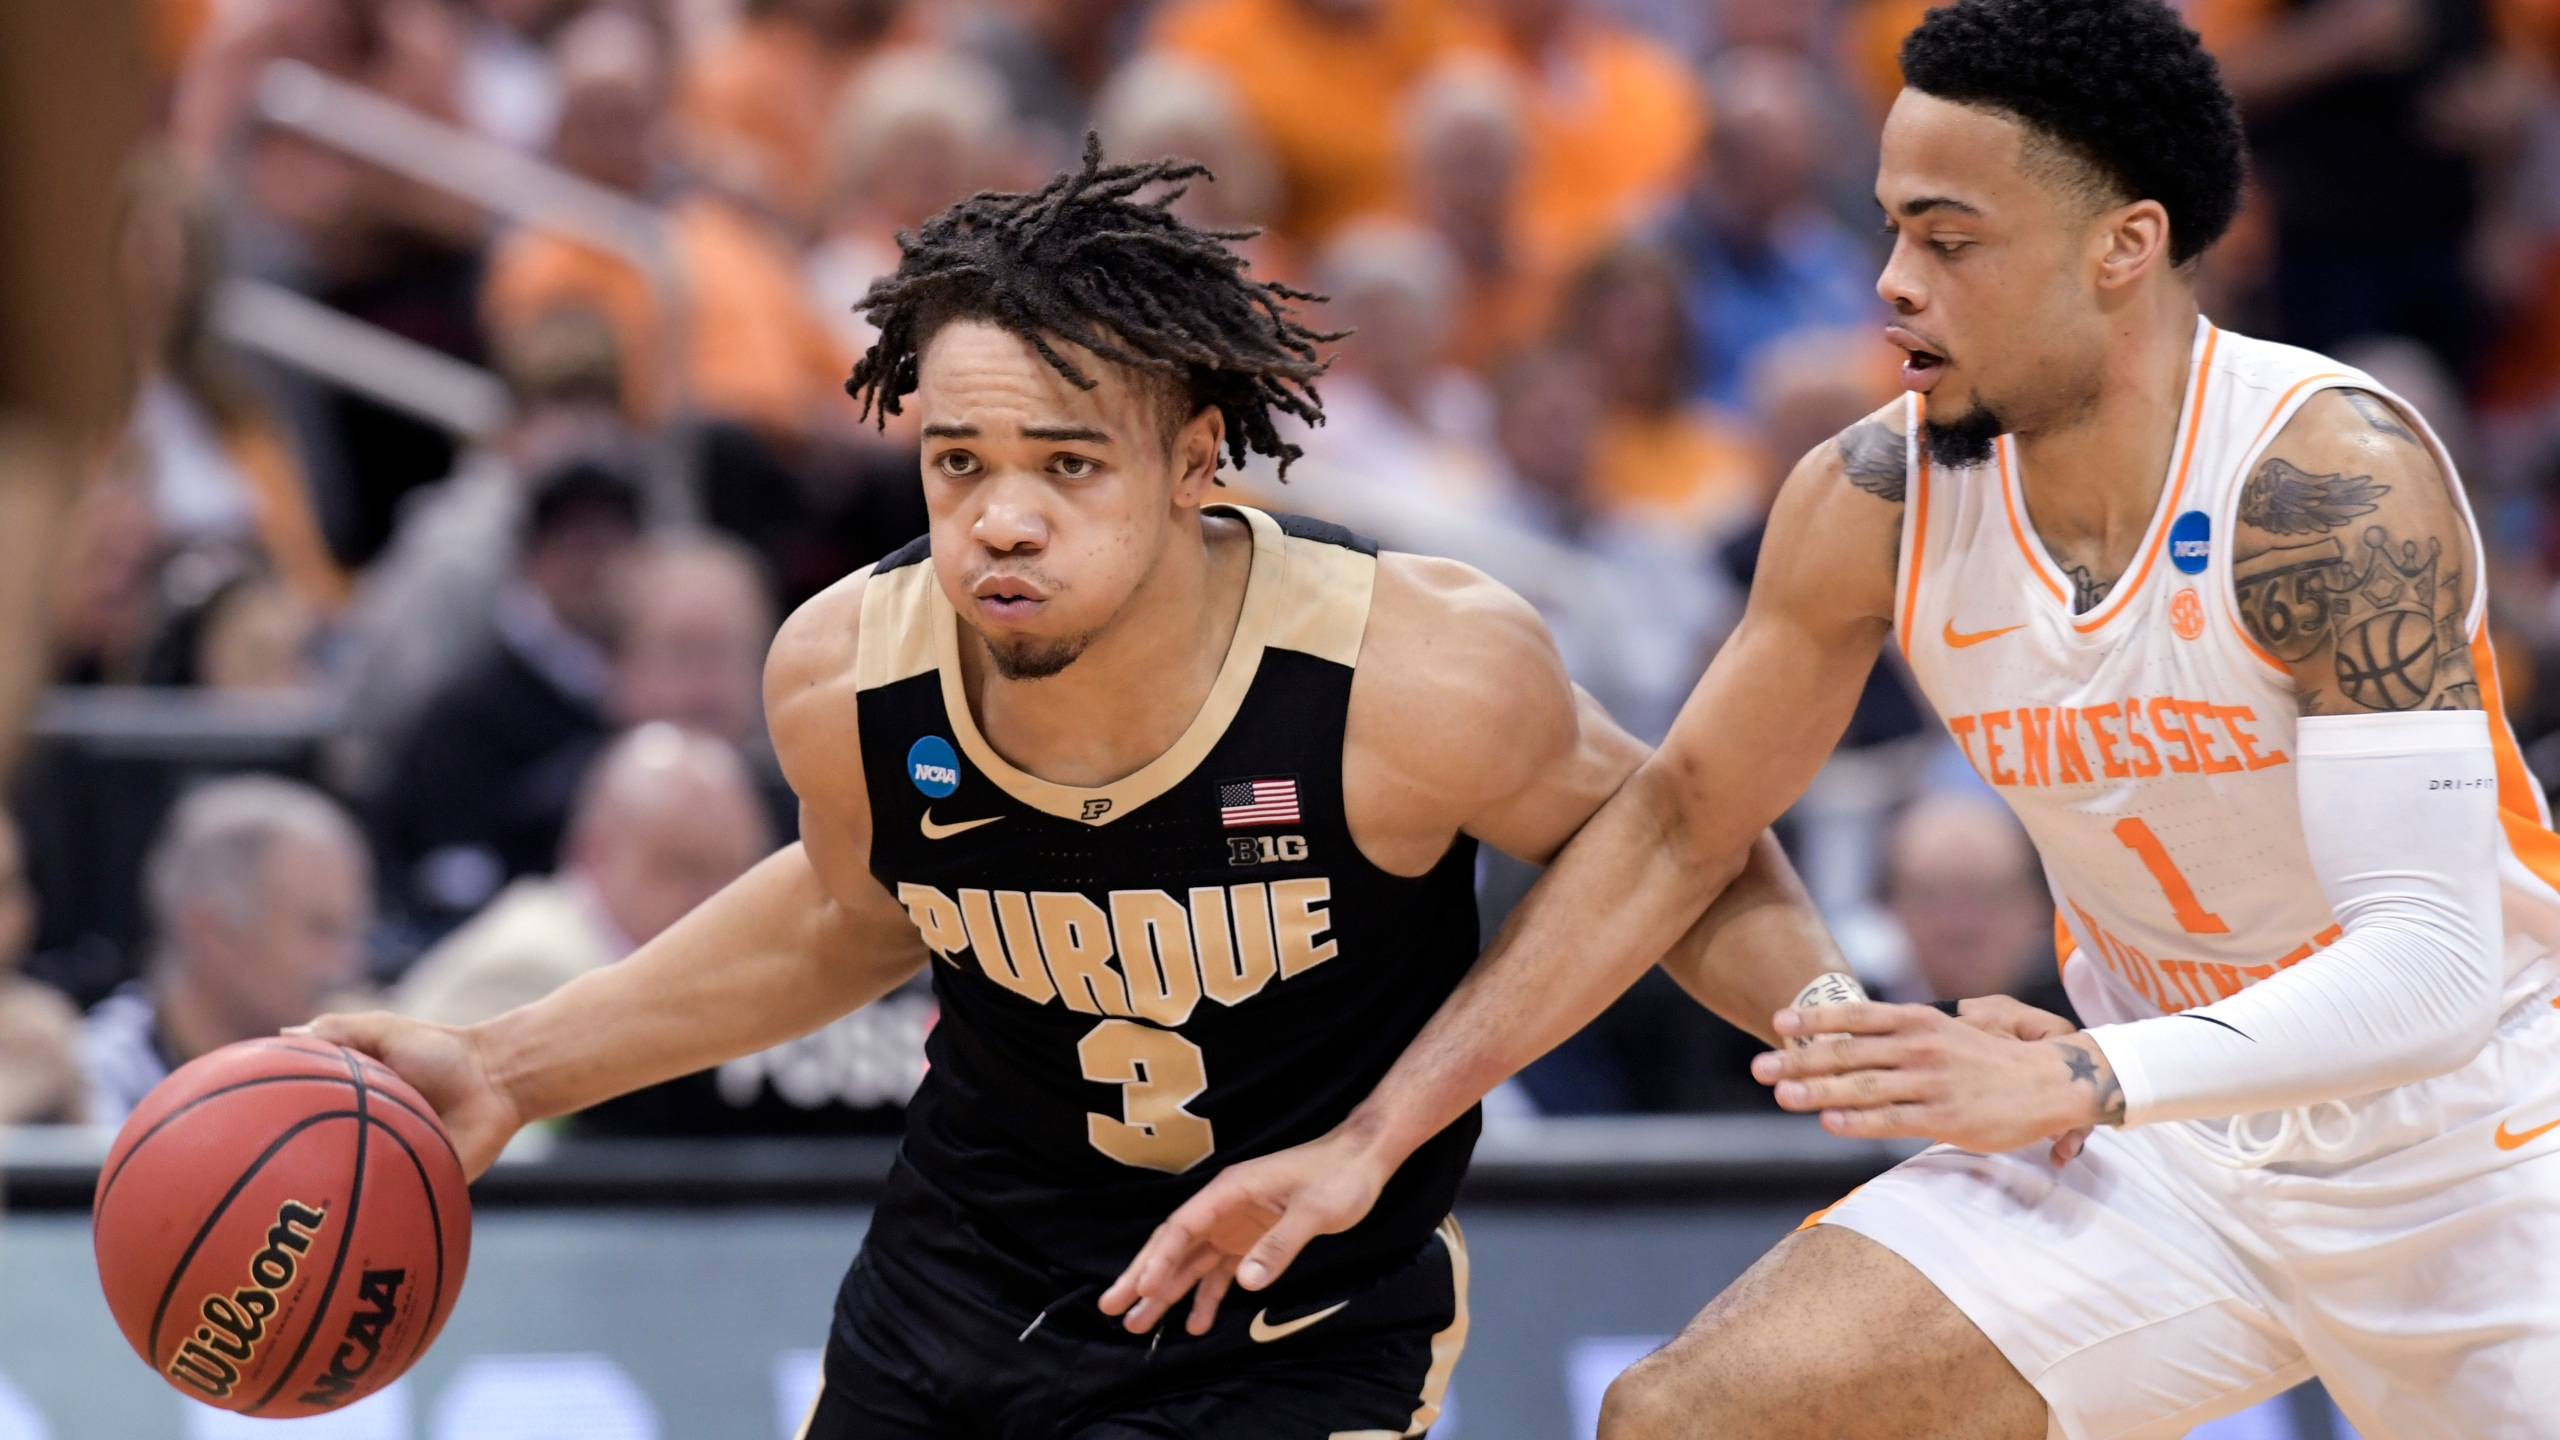 NCAA Purdue Tennessee Basketball_1553824883873